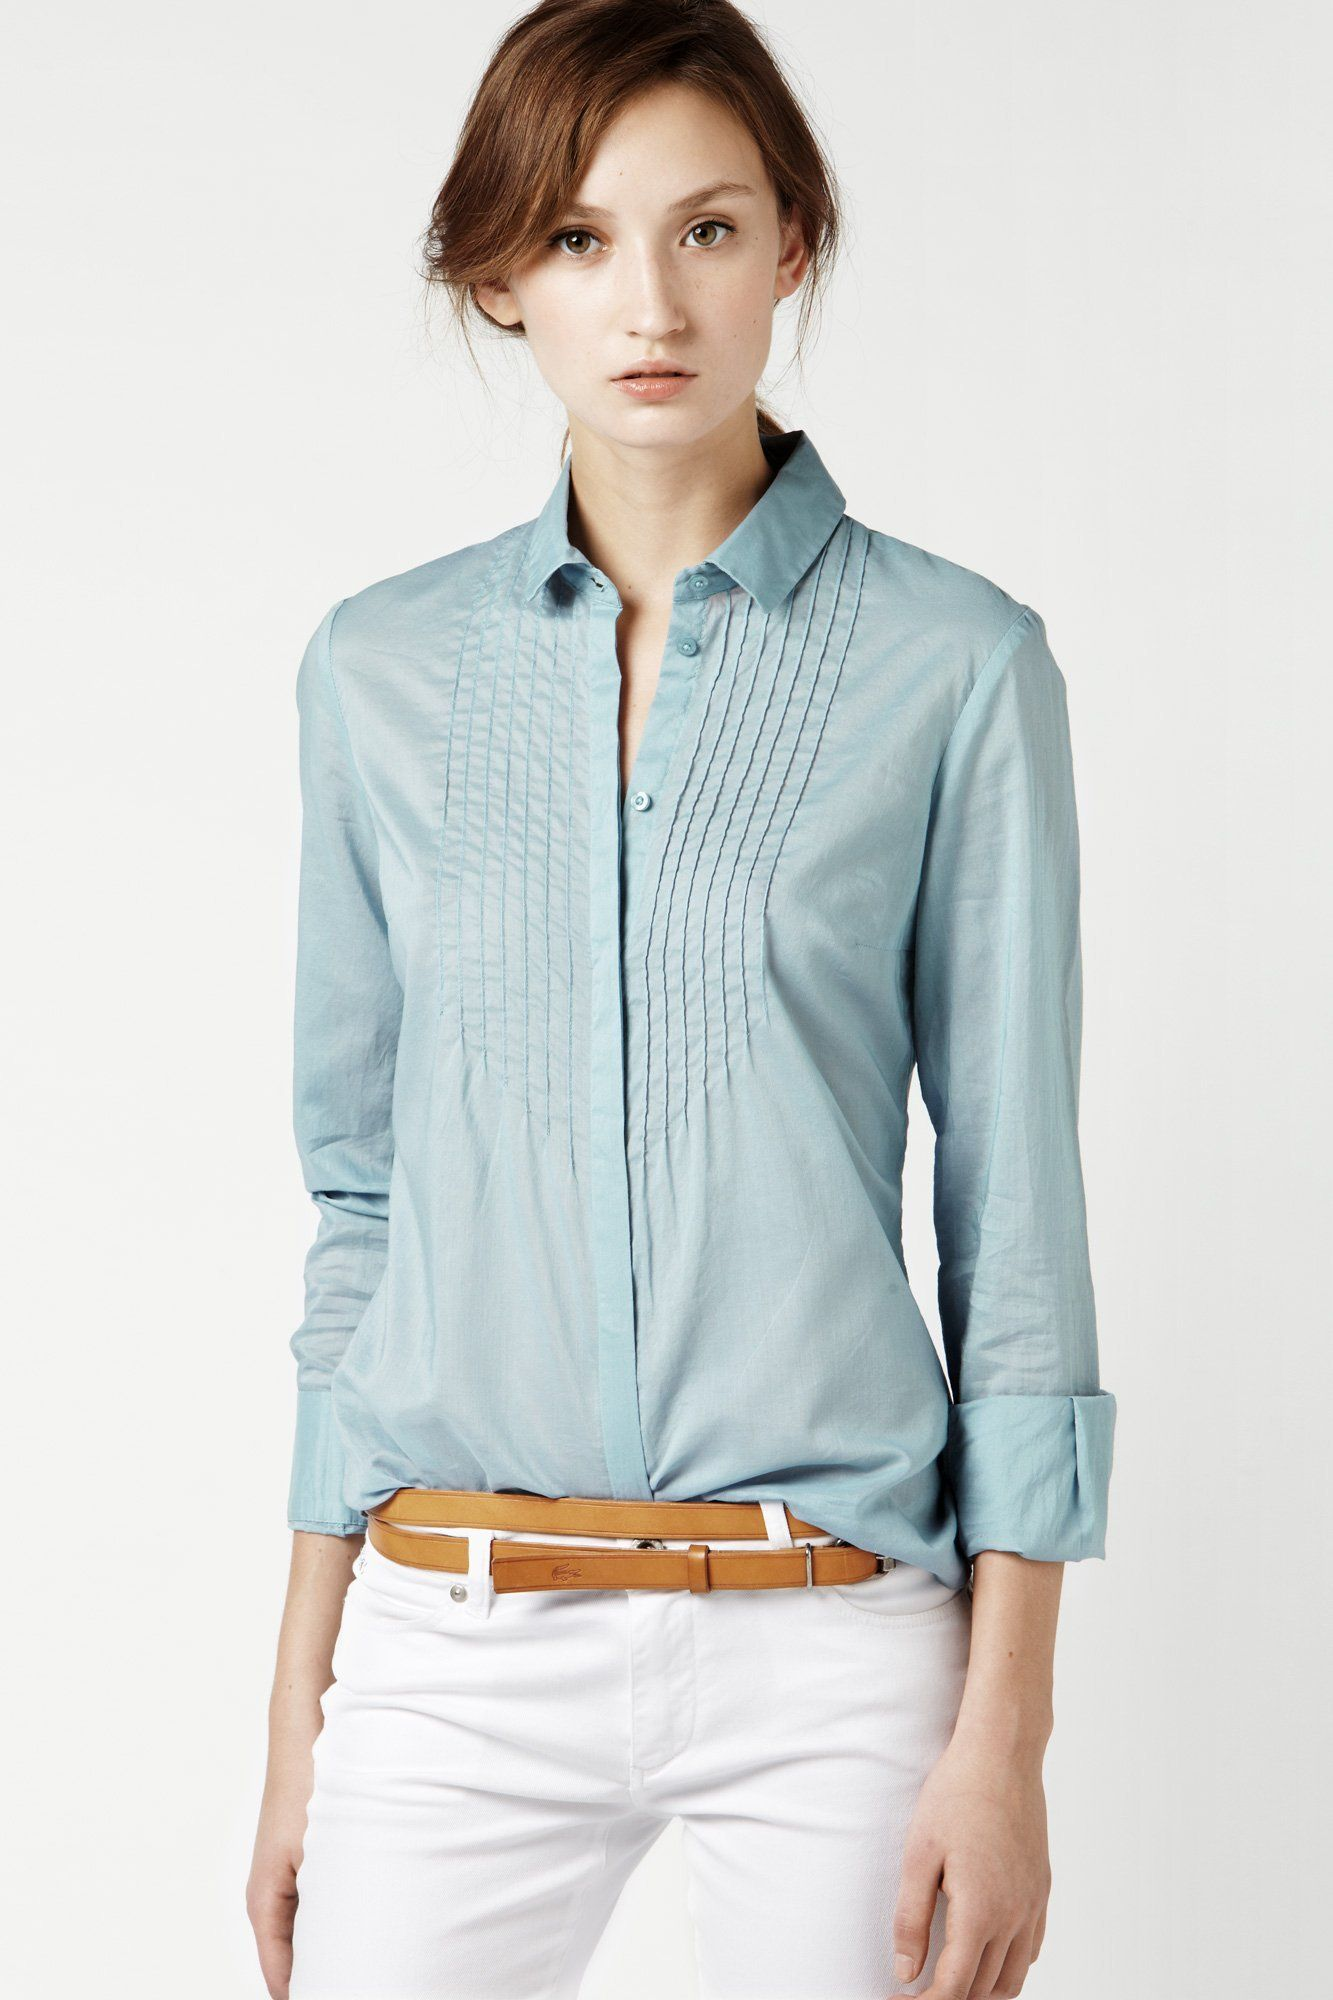 Lacoste Long Sleeve Voile Pleated Woven Shirt : Tops & Tees